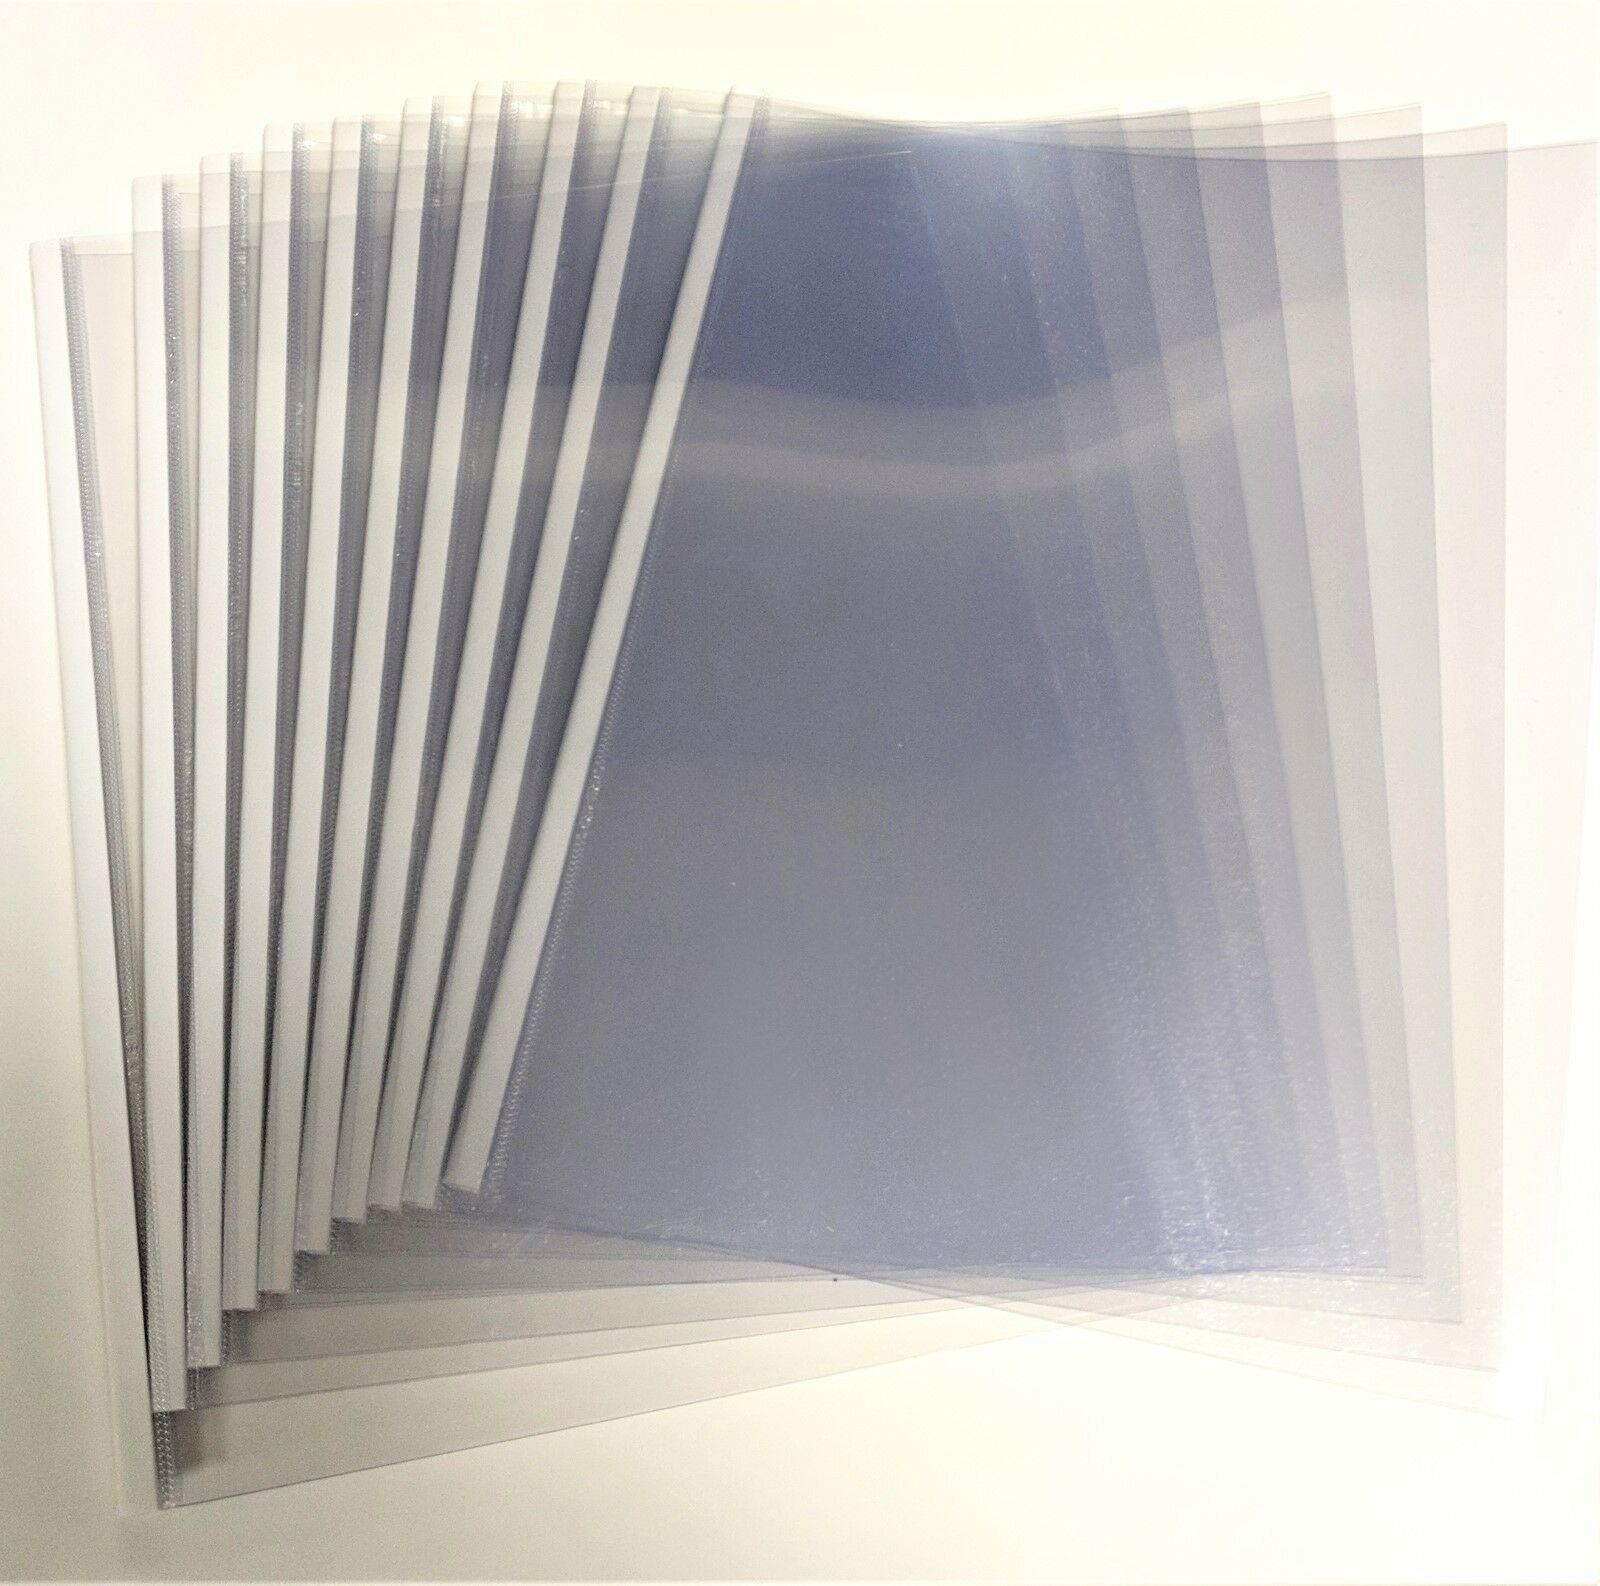 18mm White UniBind SteelCrystal Covers - 100pcs